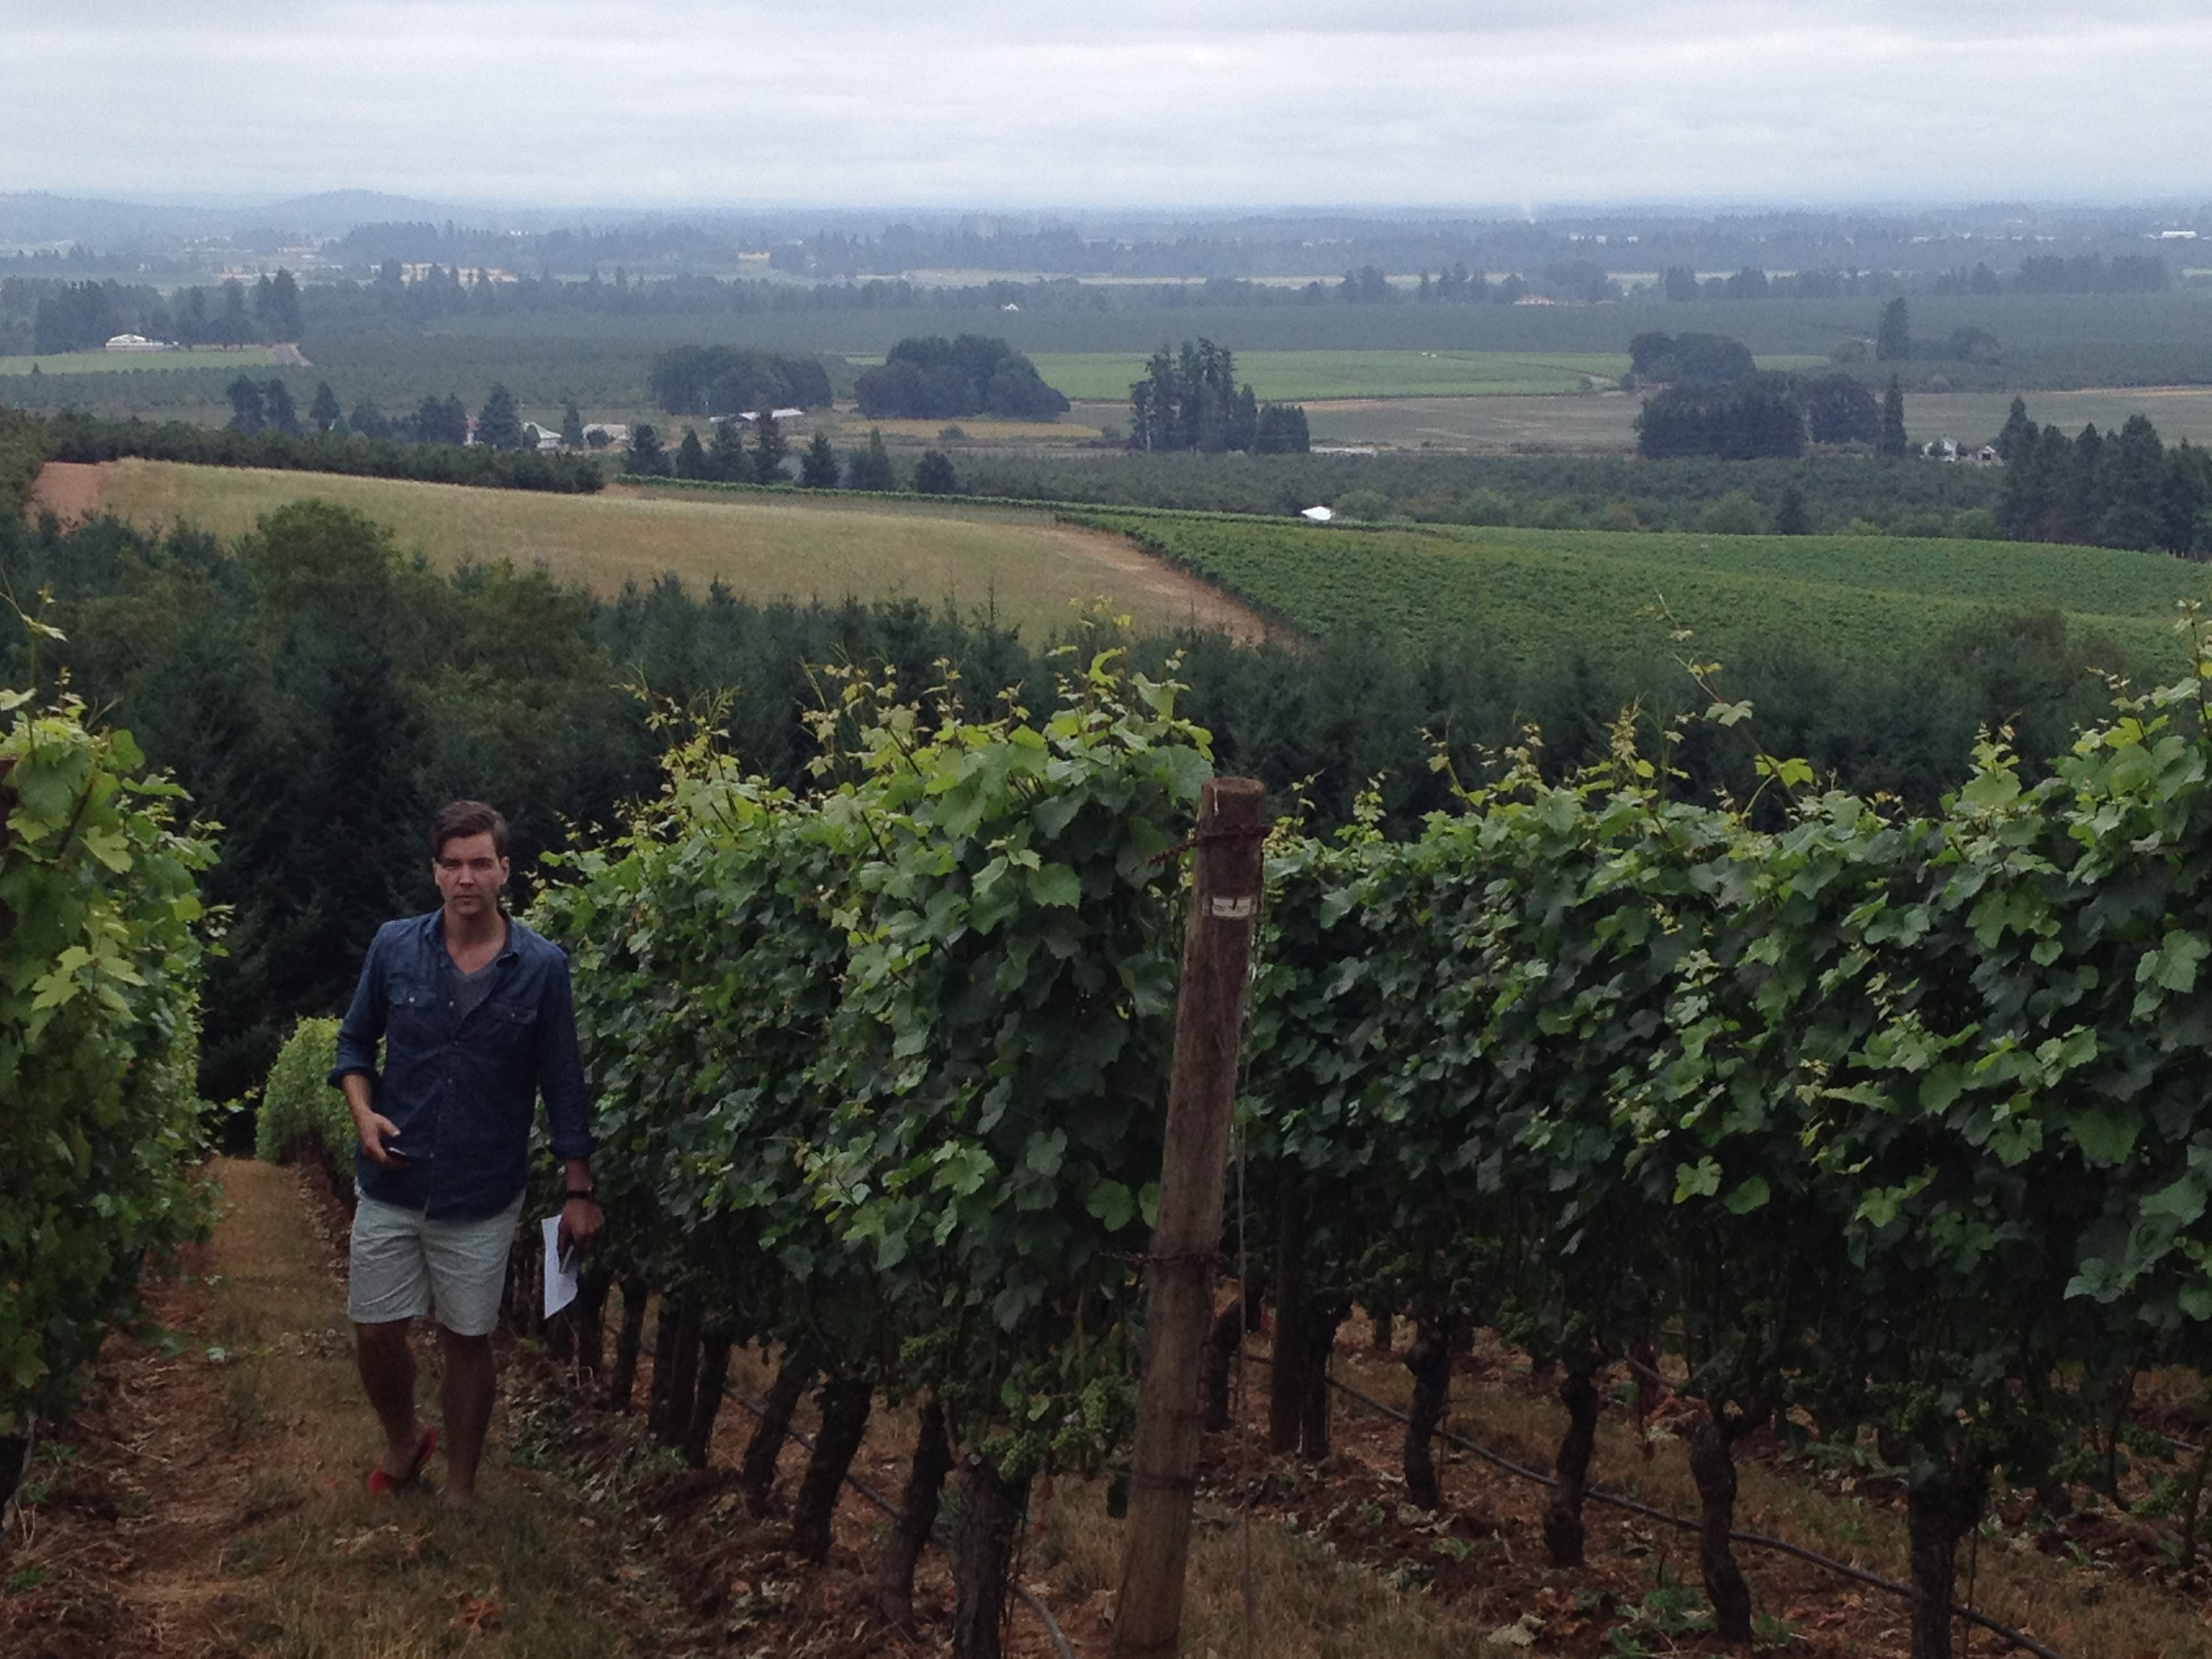 Climbing the steep slopes of the Renegade Ridge vineyard.